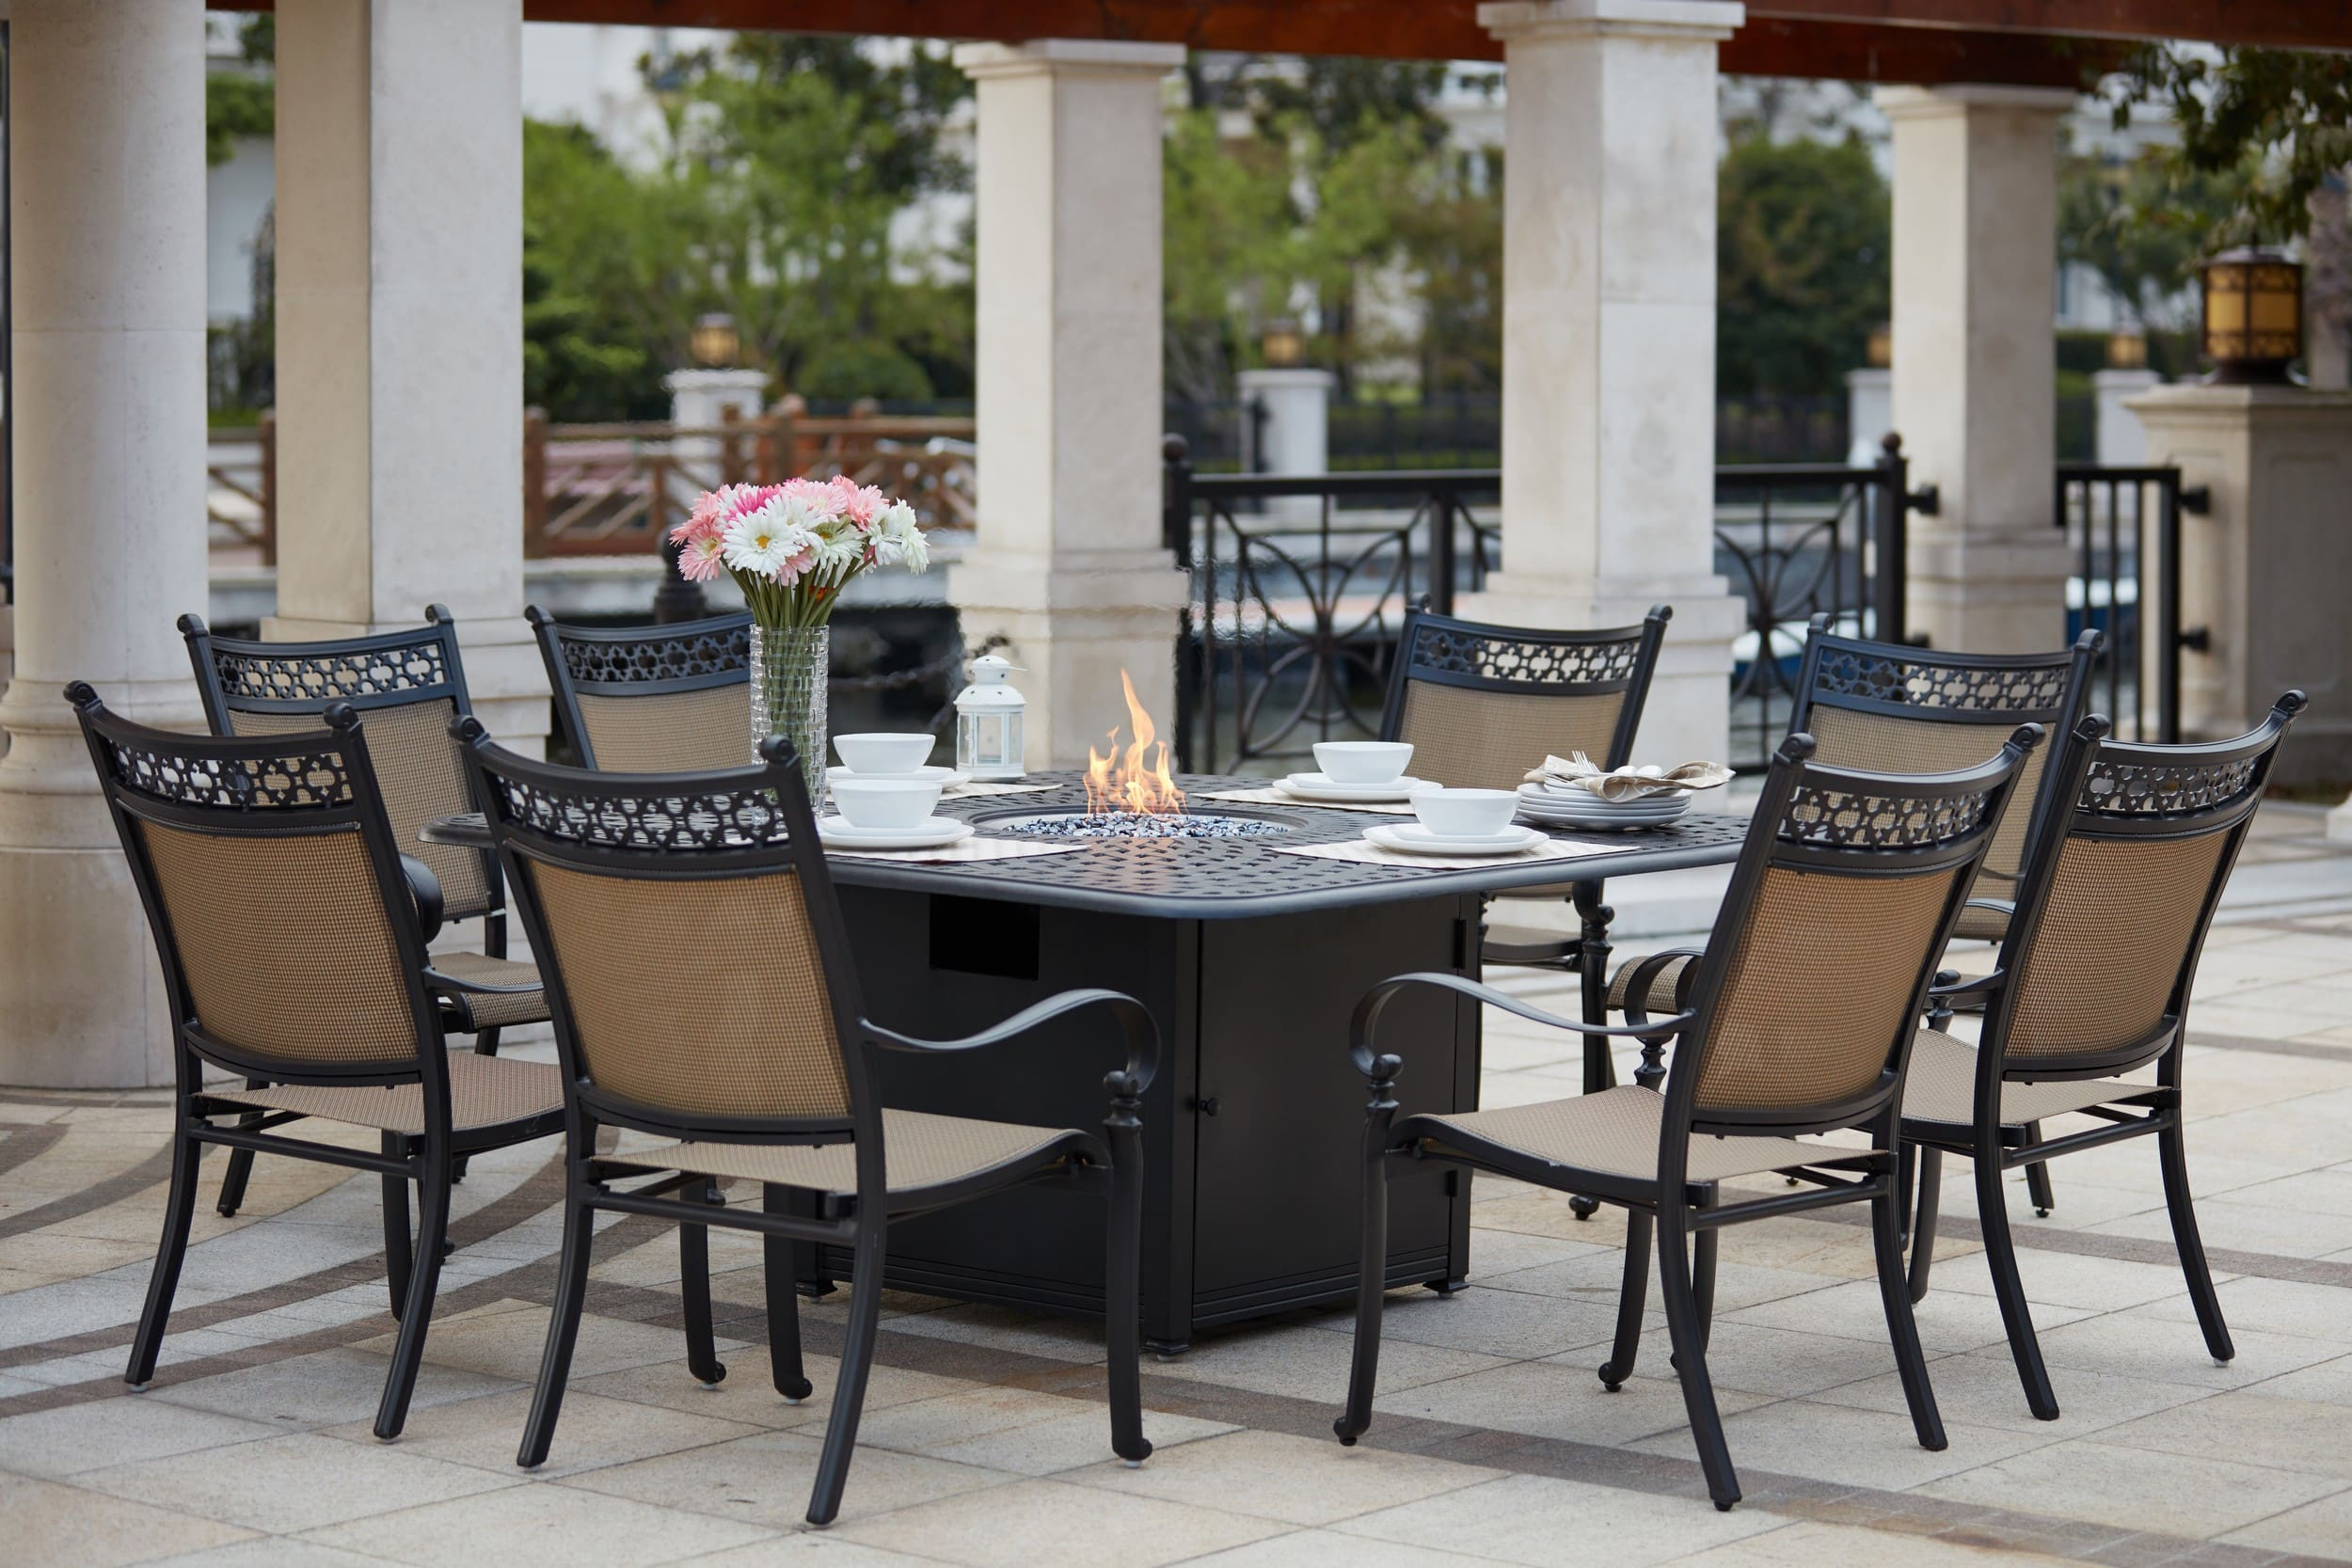 Peachy Darlee Mountain View Cast Aluminum 9 Piece Dining Set With 64 Square Propane Fire Pit Dining Table Reviews Goedekers Com Squirreltailoven Fun Painted Chair Ideas Images Squirreltailovenorg